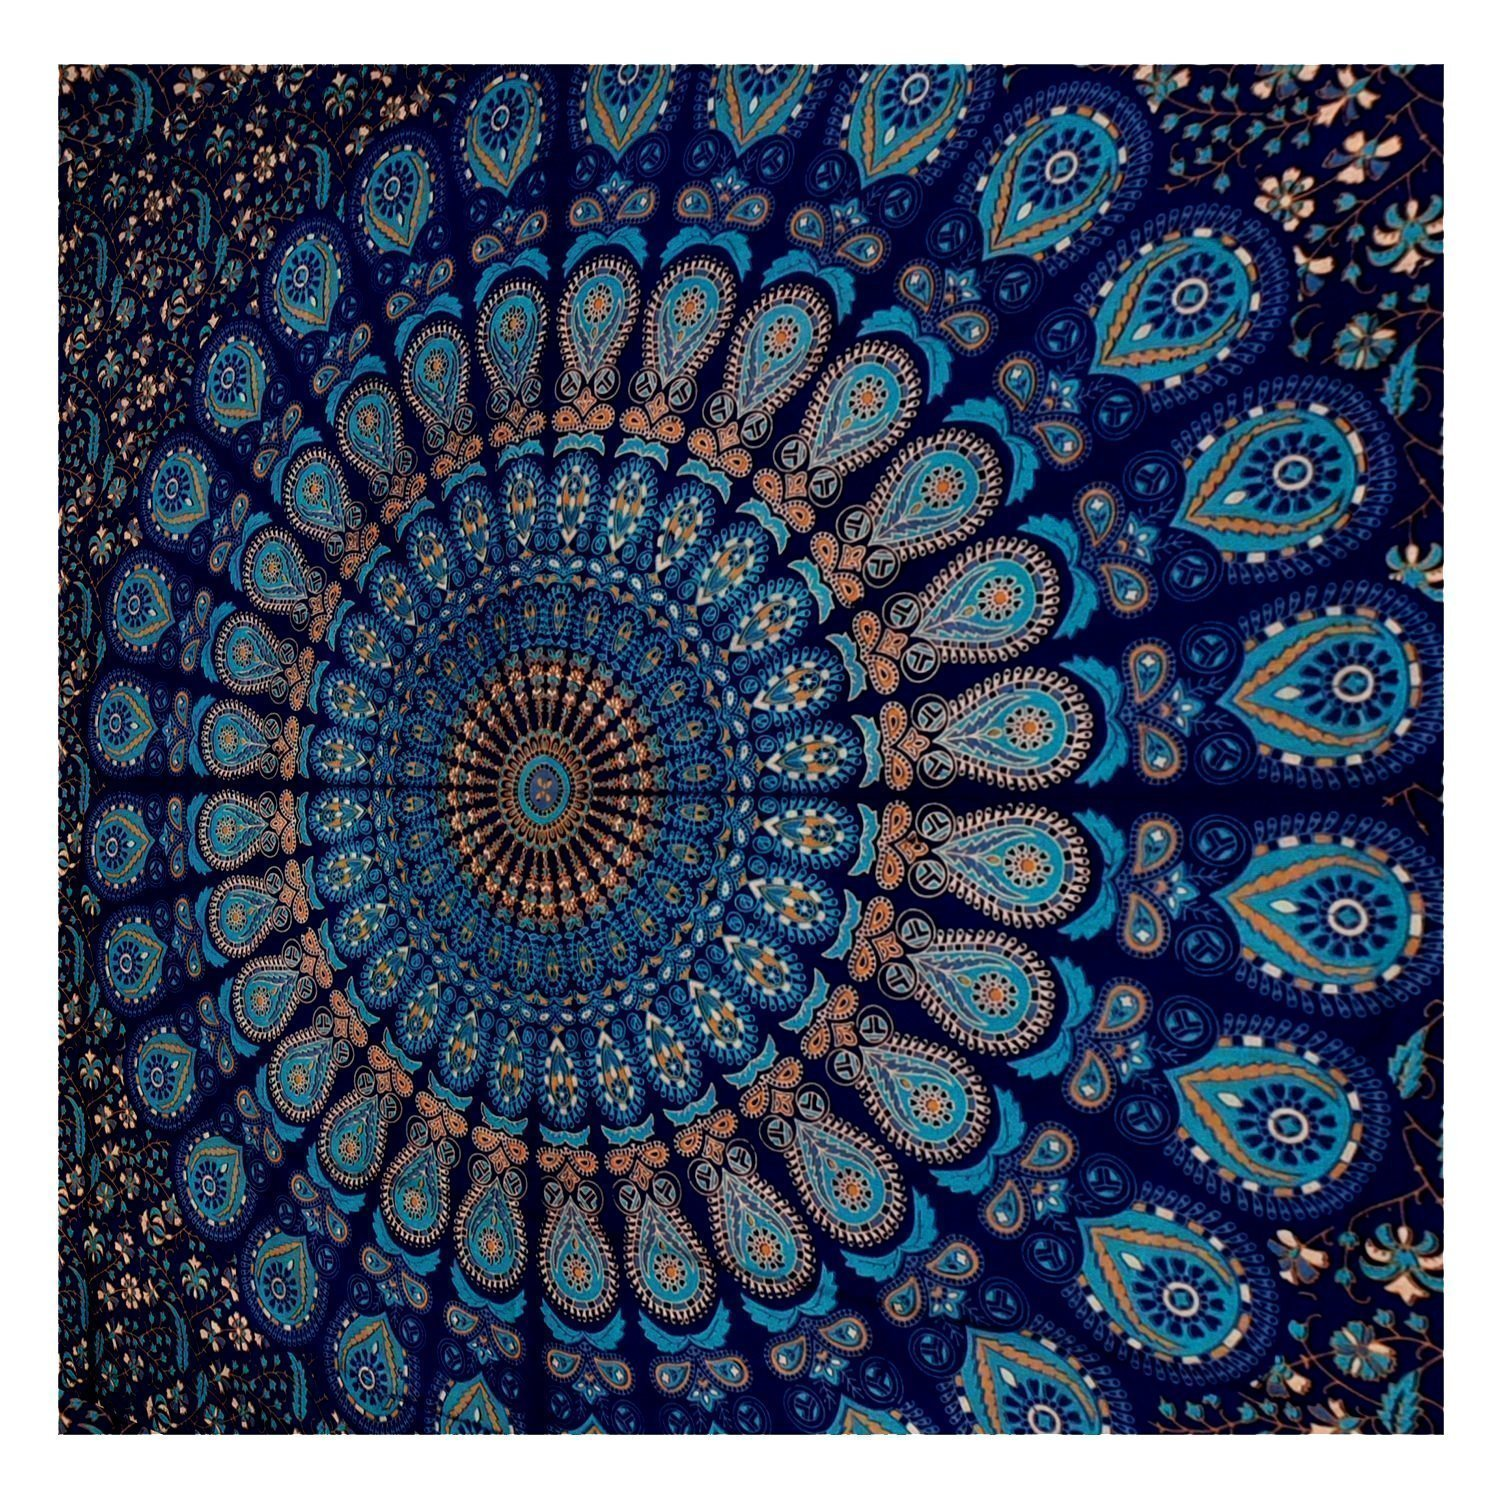 GLOBUS CHOICE INC.. Blue Tapestry Wall Hanging Mandala Tapestries Indian Cotton Bedspread Picnic Bedsheet Blanket Wall Art Hippie Tapestry by GLOBUS CHOICE INC.